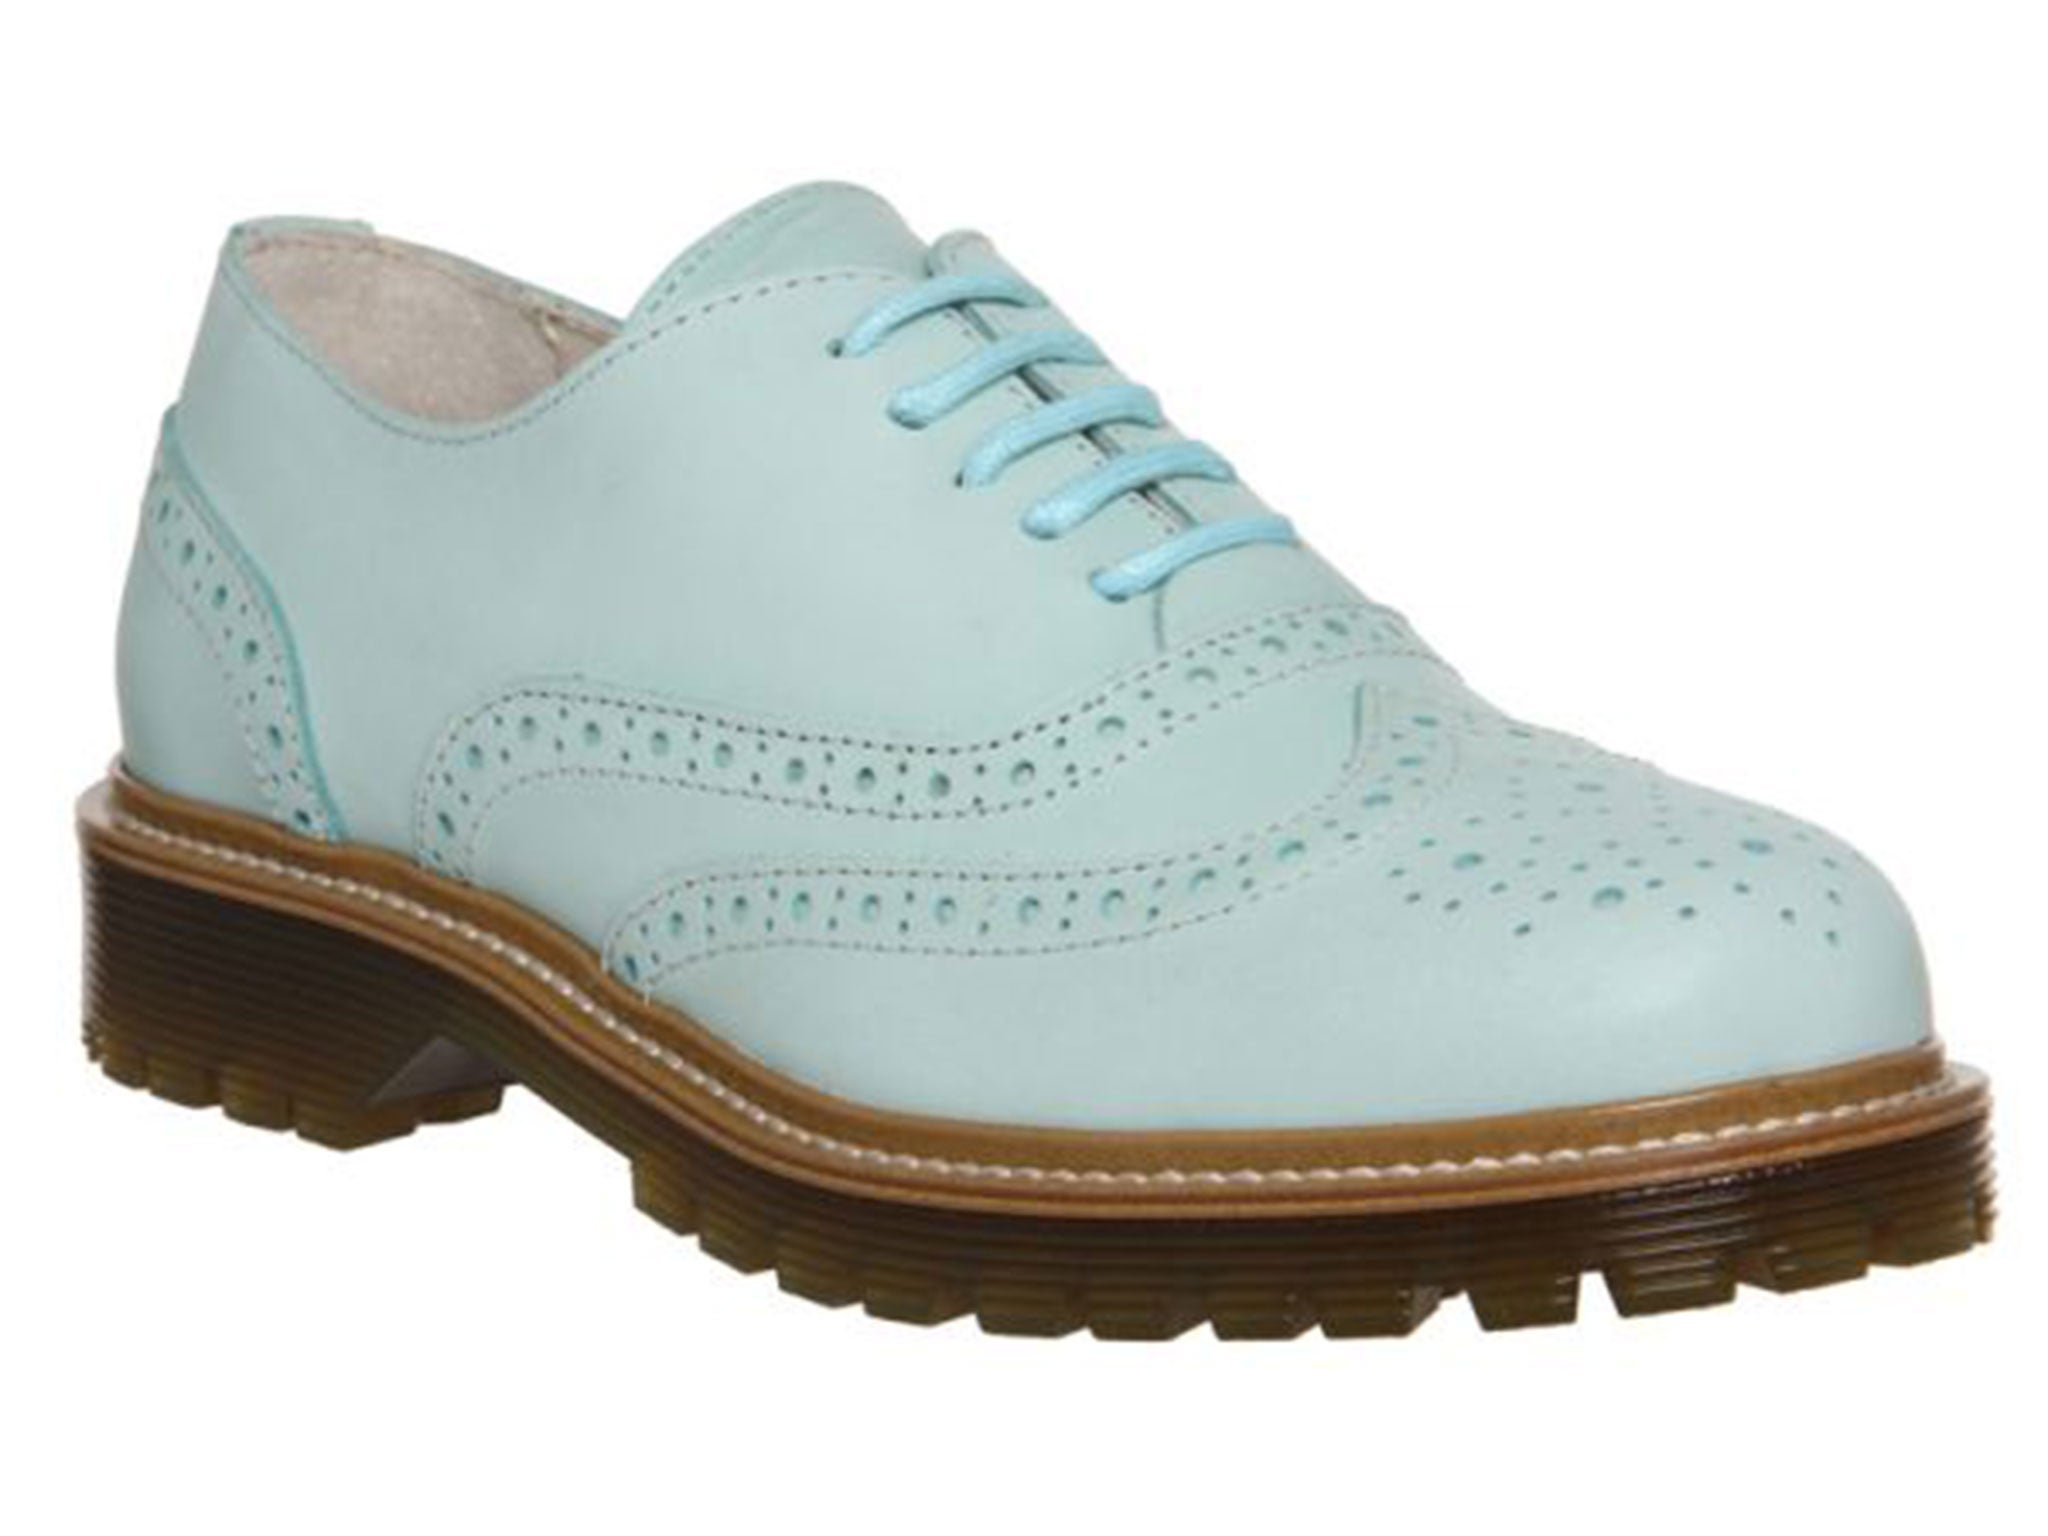 0e8f2309471 12 best women s brogues